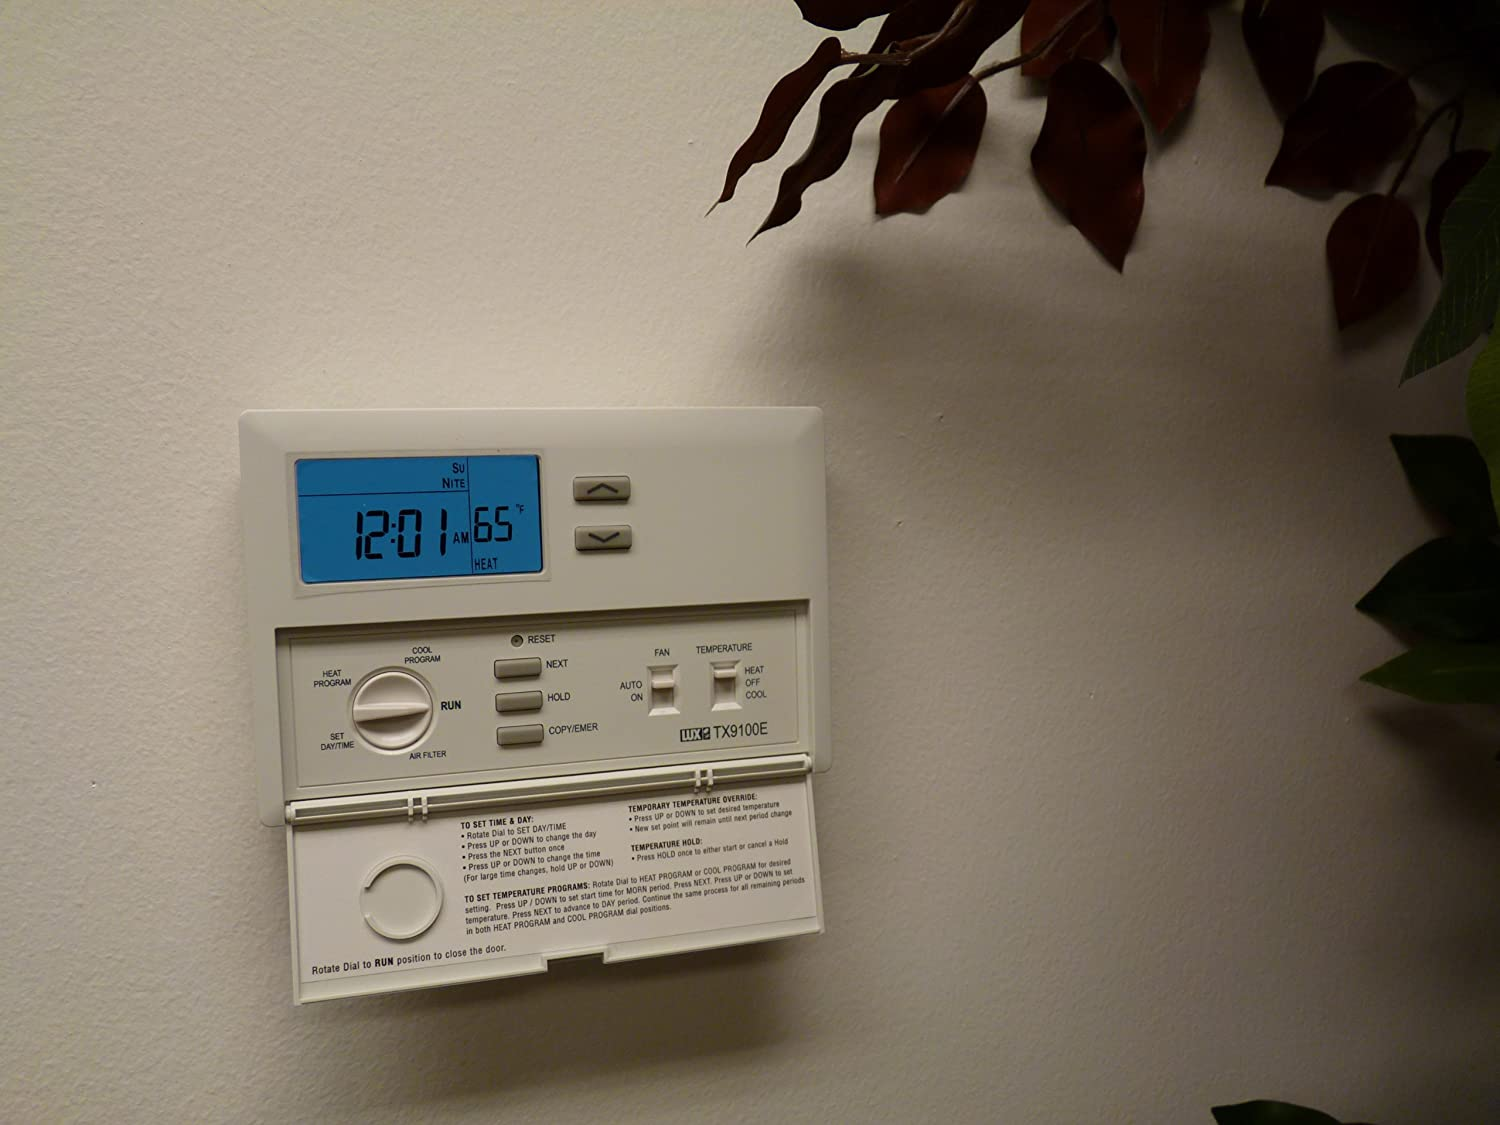 81HybGgfhbL._SL1500_ lux tx9100e 7 day universal programmable thermostat locking  at soozxer.org